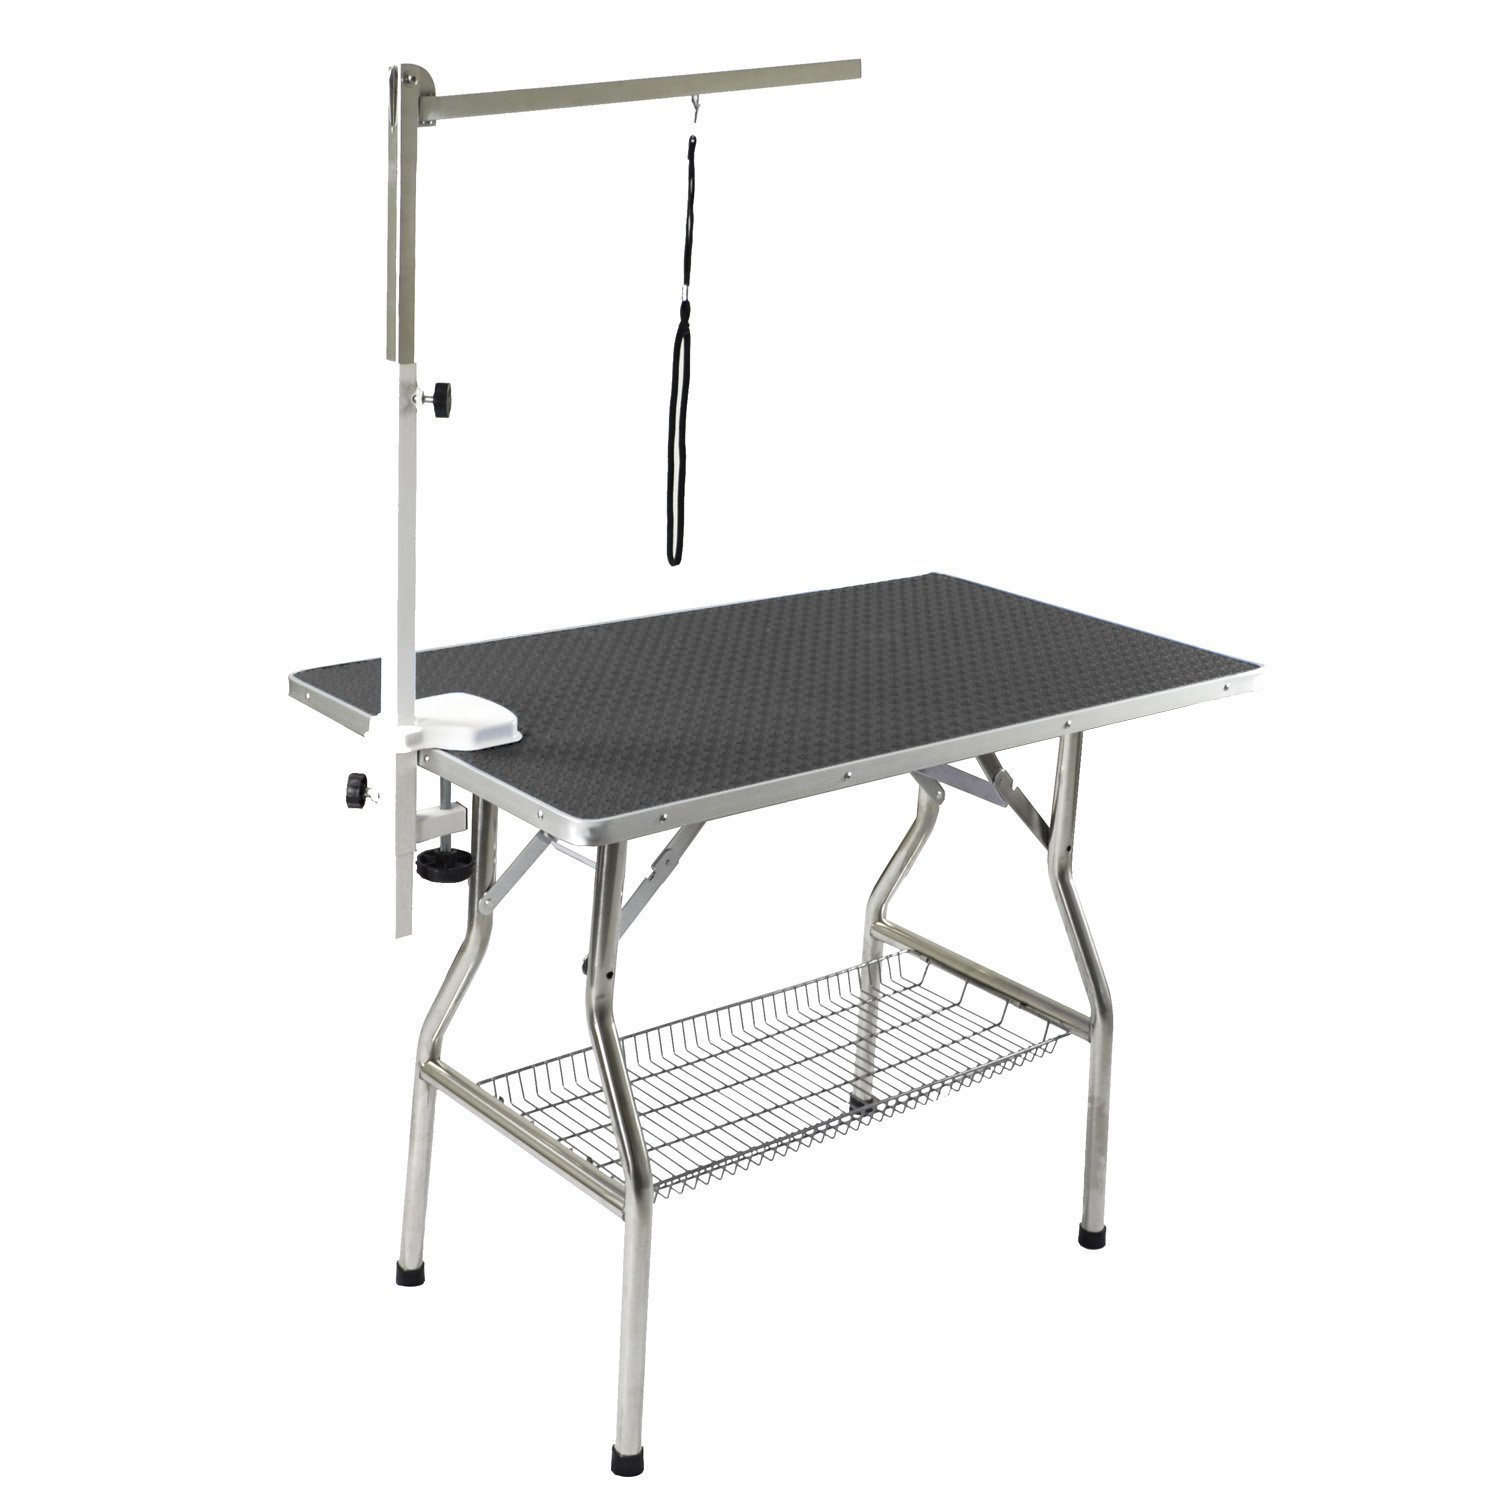 Flying Pig Grooming Medium Stainless Steel Frame Foldable Dog Pet Table, 38'' by 22'', Black